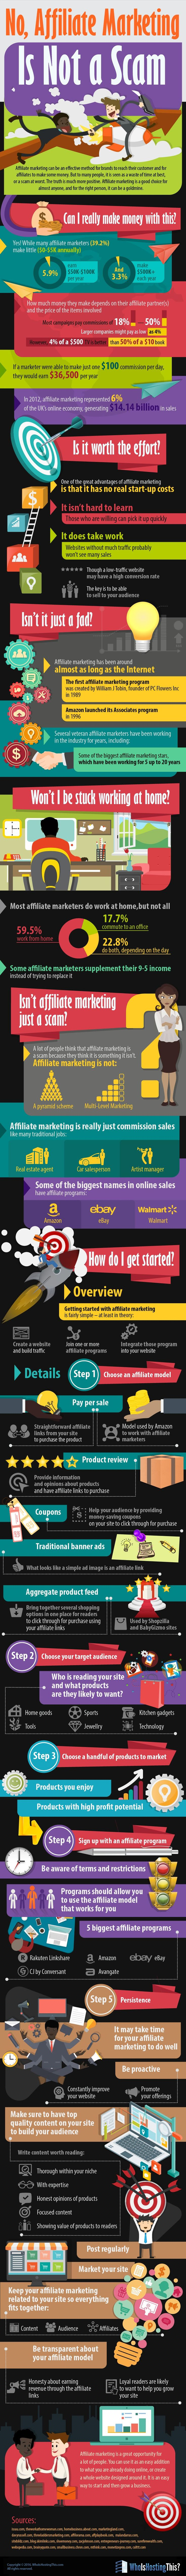 Can You Really Make Money with Affiliate Marketing? - #infographic